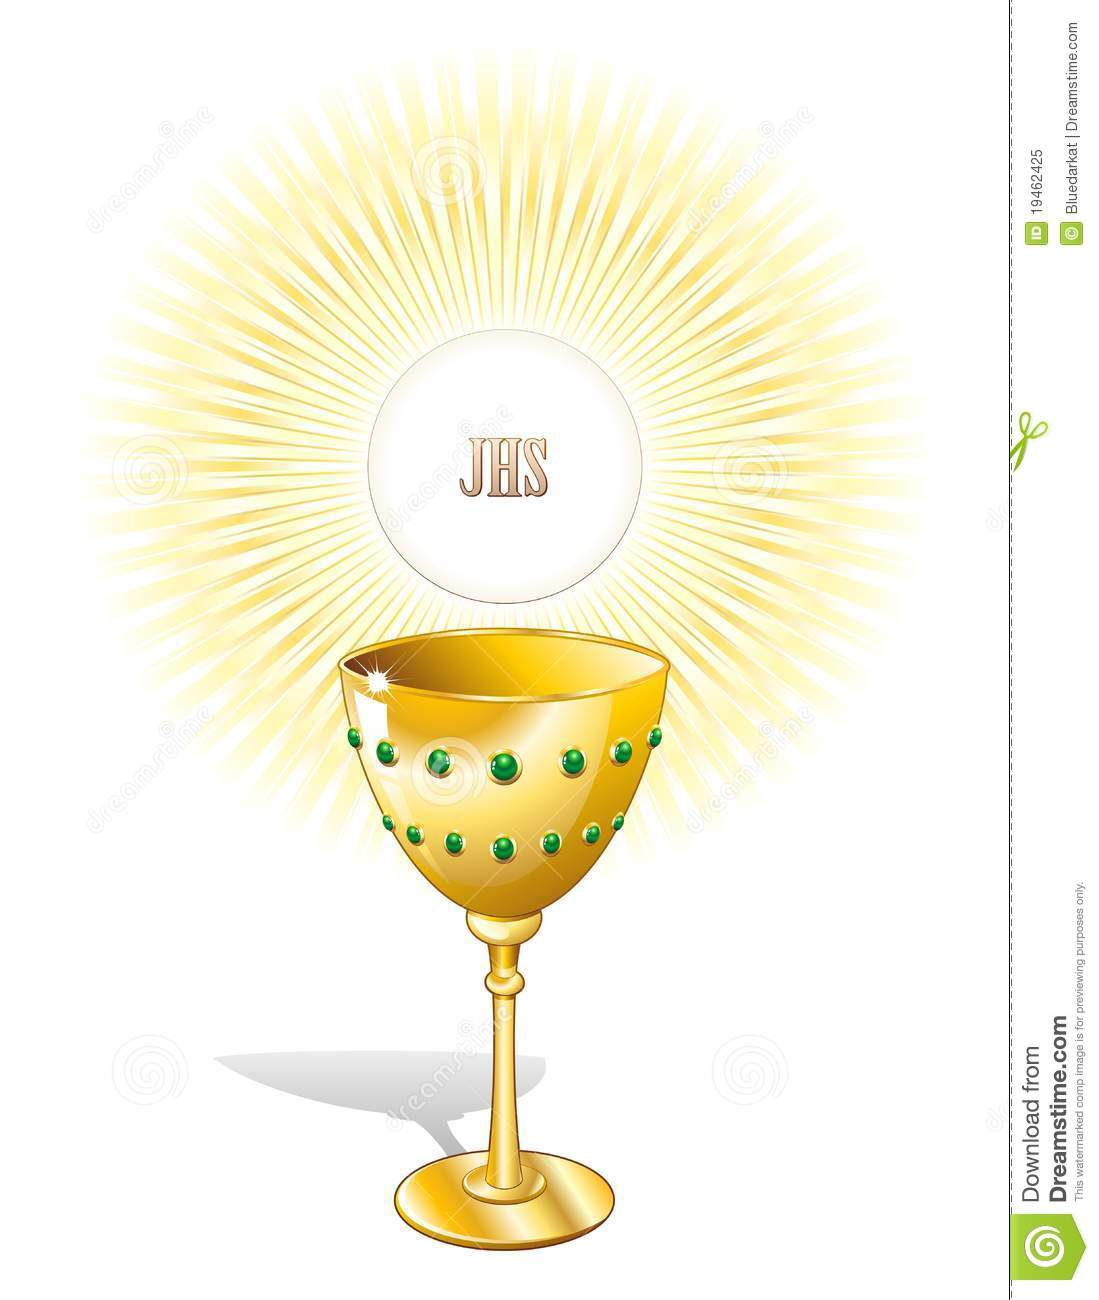 religion chalice cup and host stock vector illustration chalice clipart black and white chalice clip art free